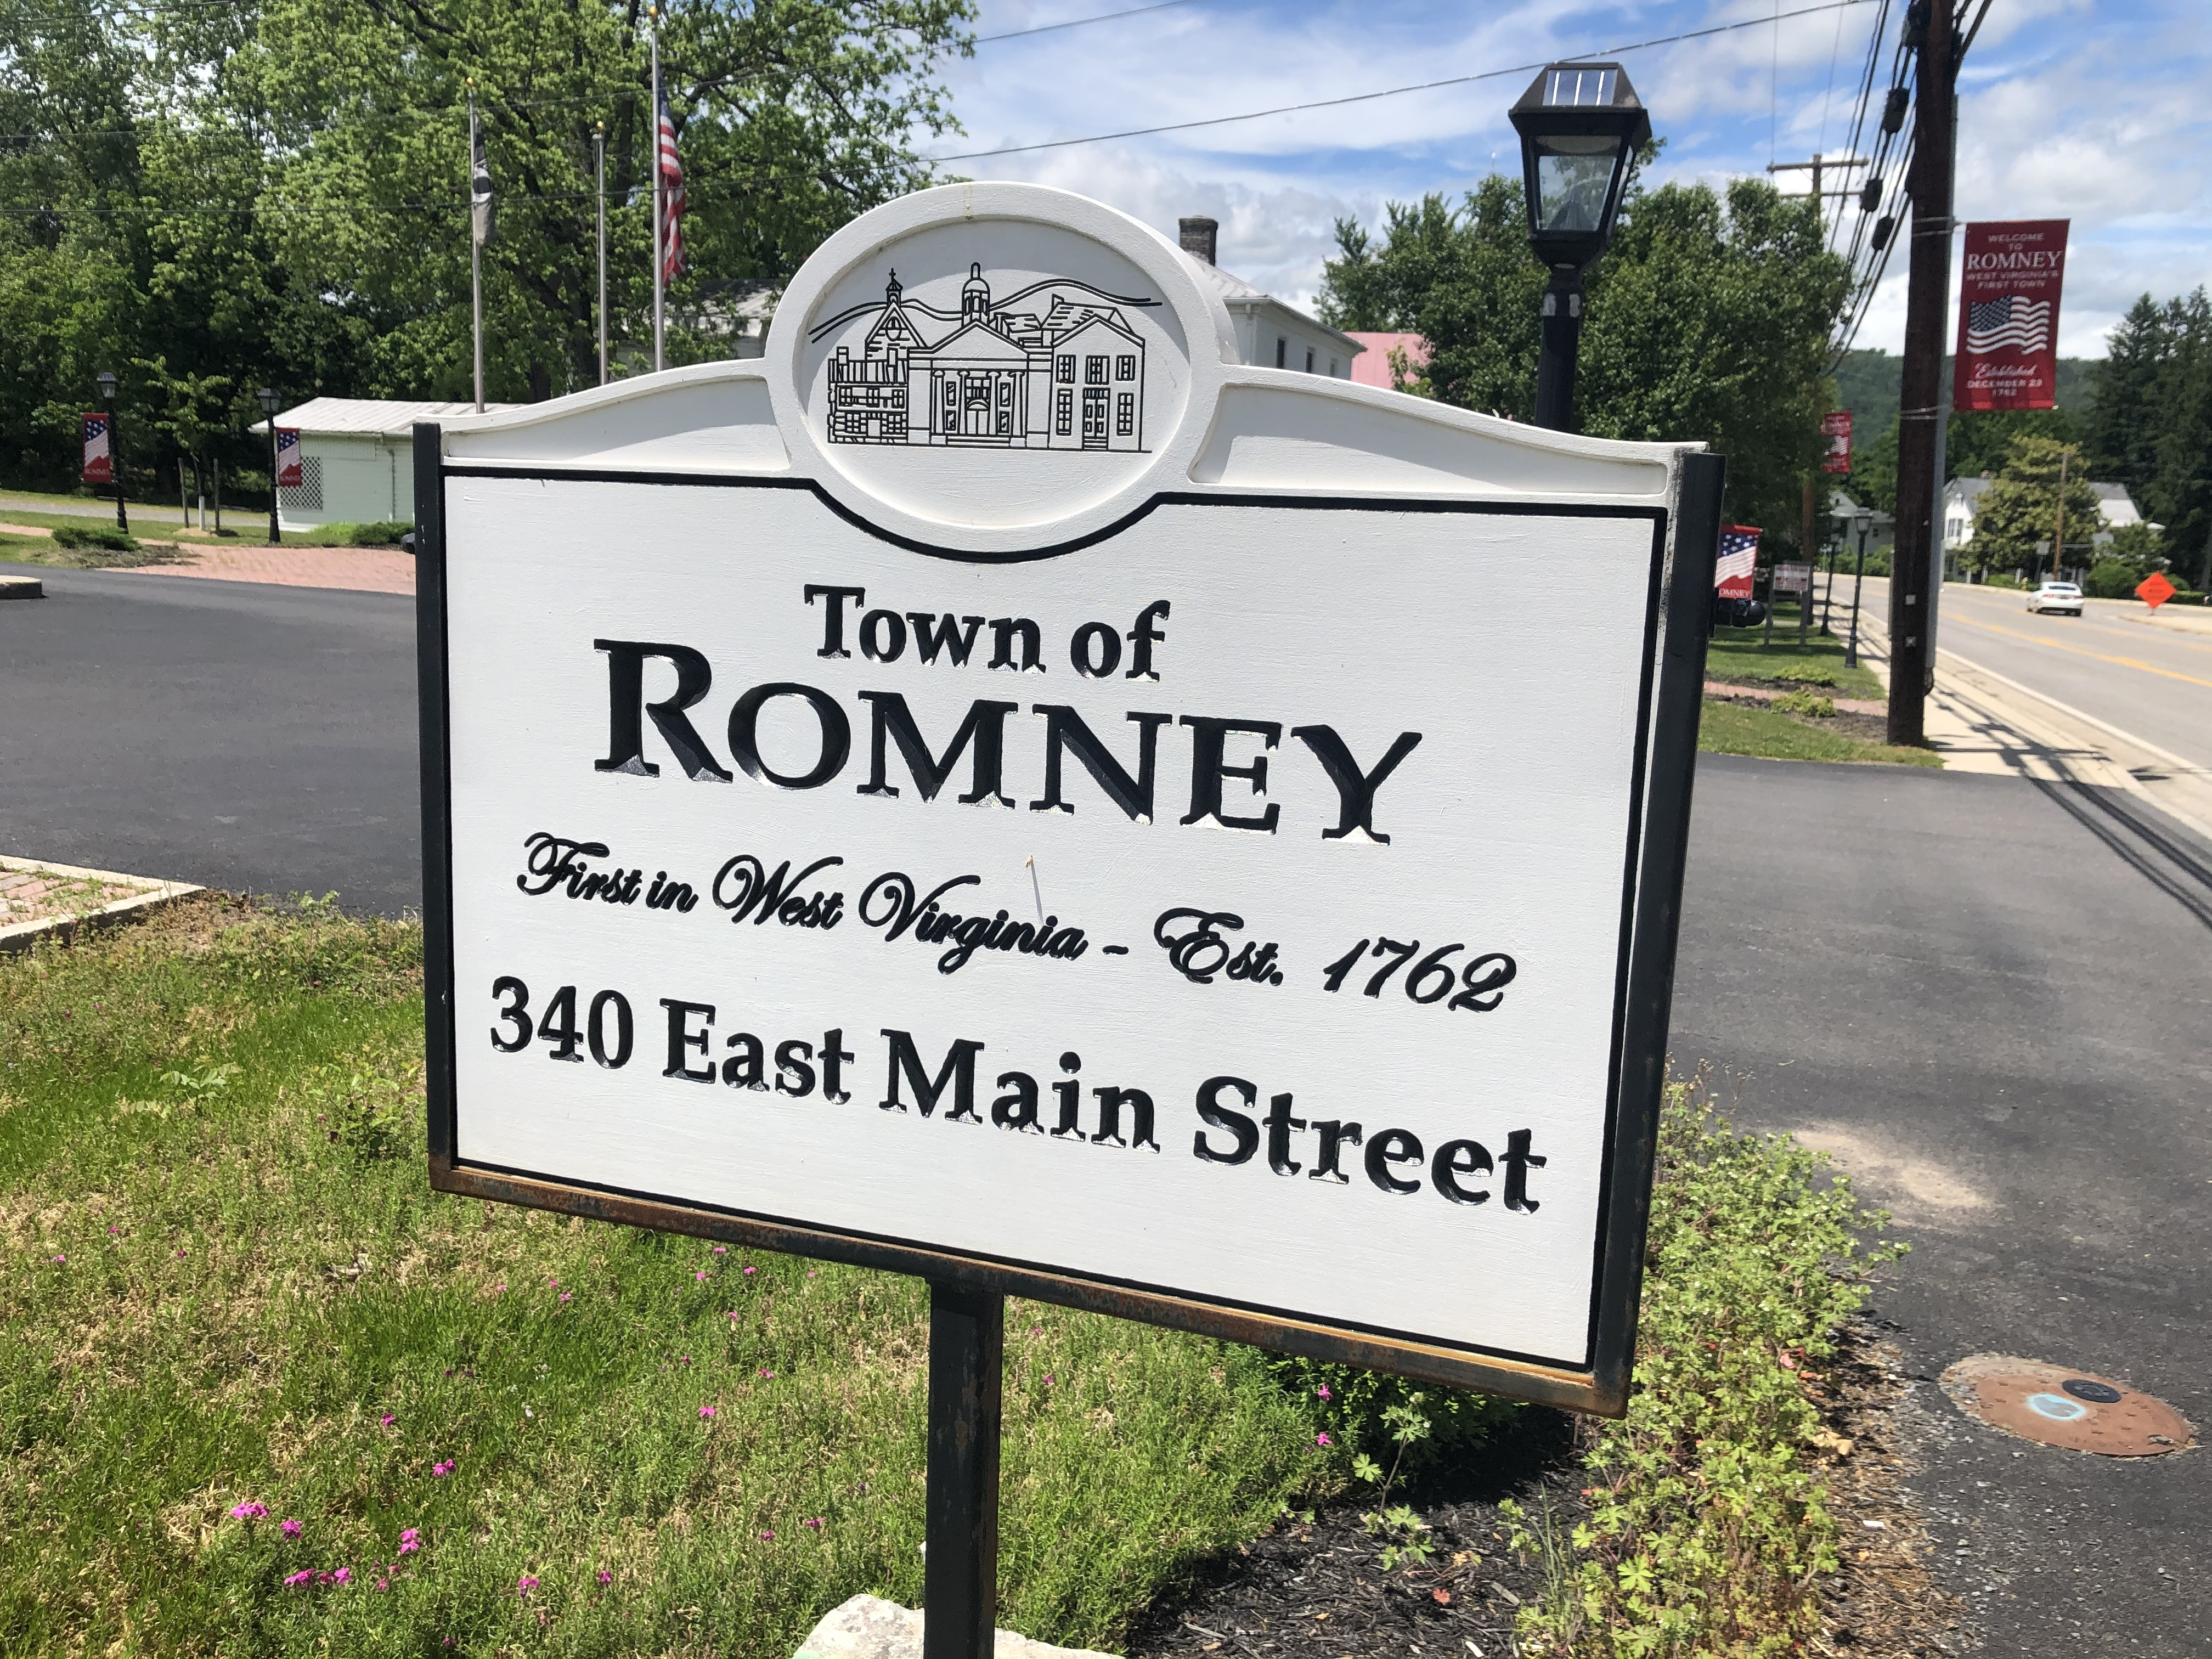 Town of Romney Marker